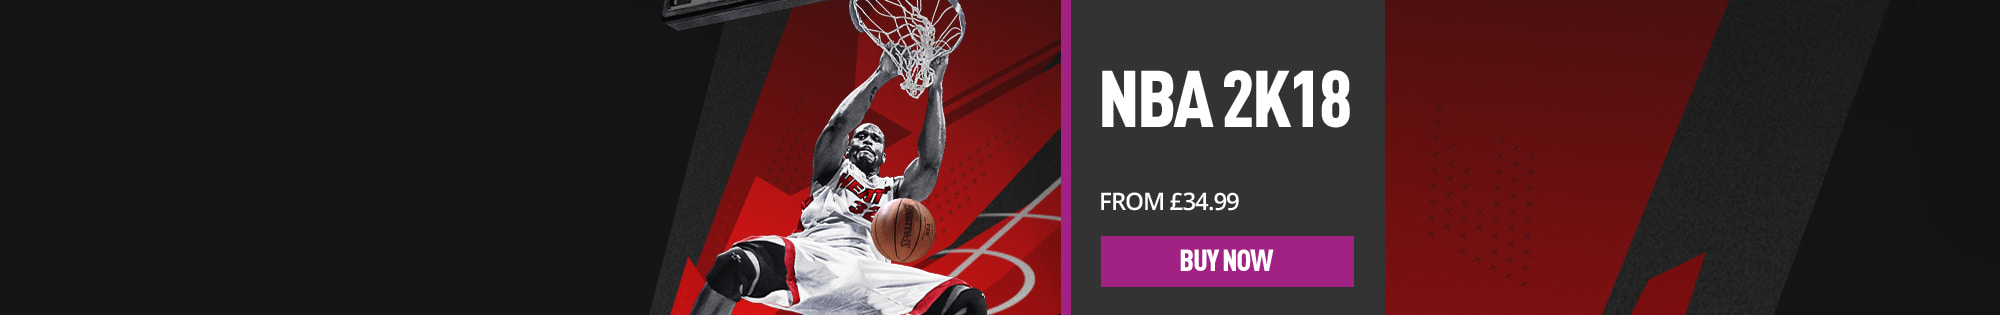 NBA 2K18 From £34.99 - Buy Now - Homepage Banner